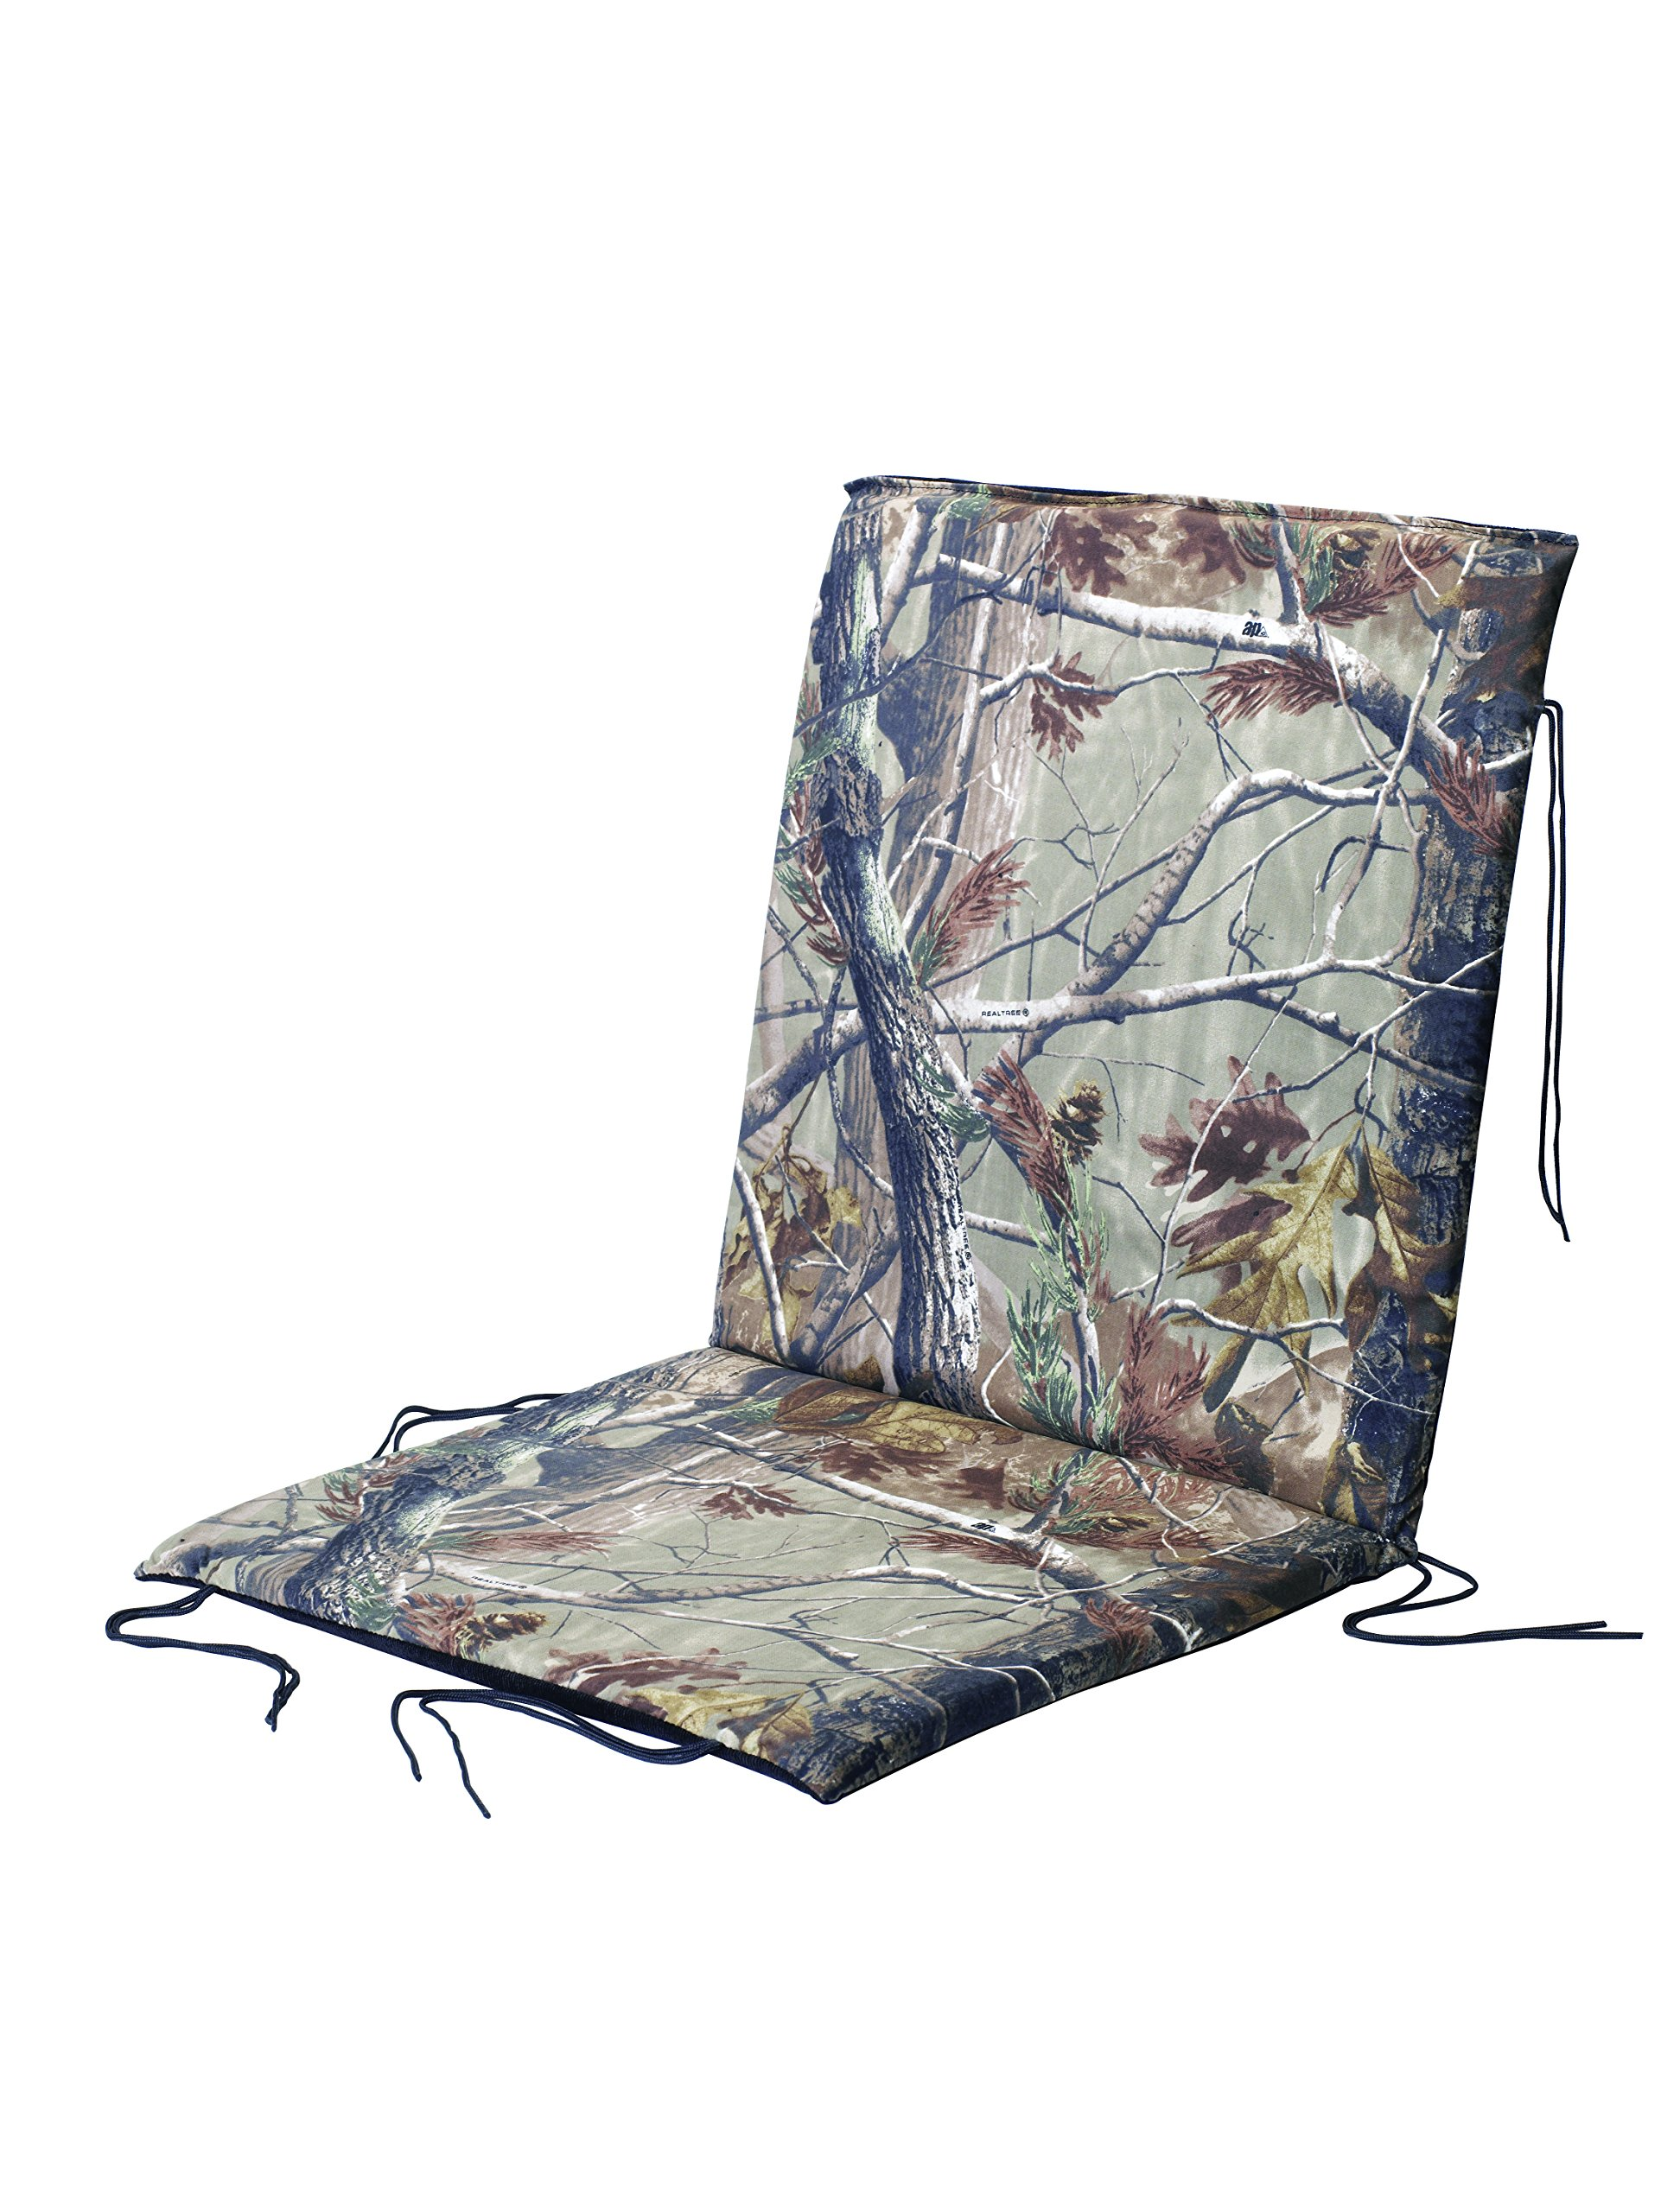 Millennium Treestands M400 Cold Weather Pad